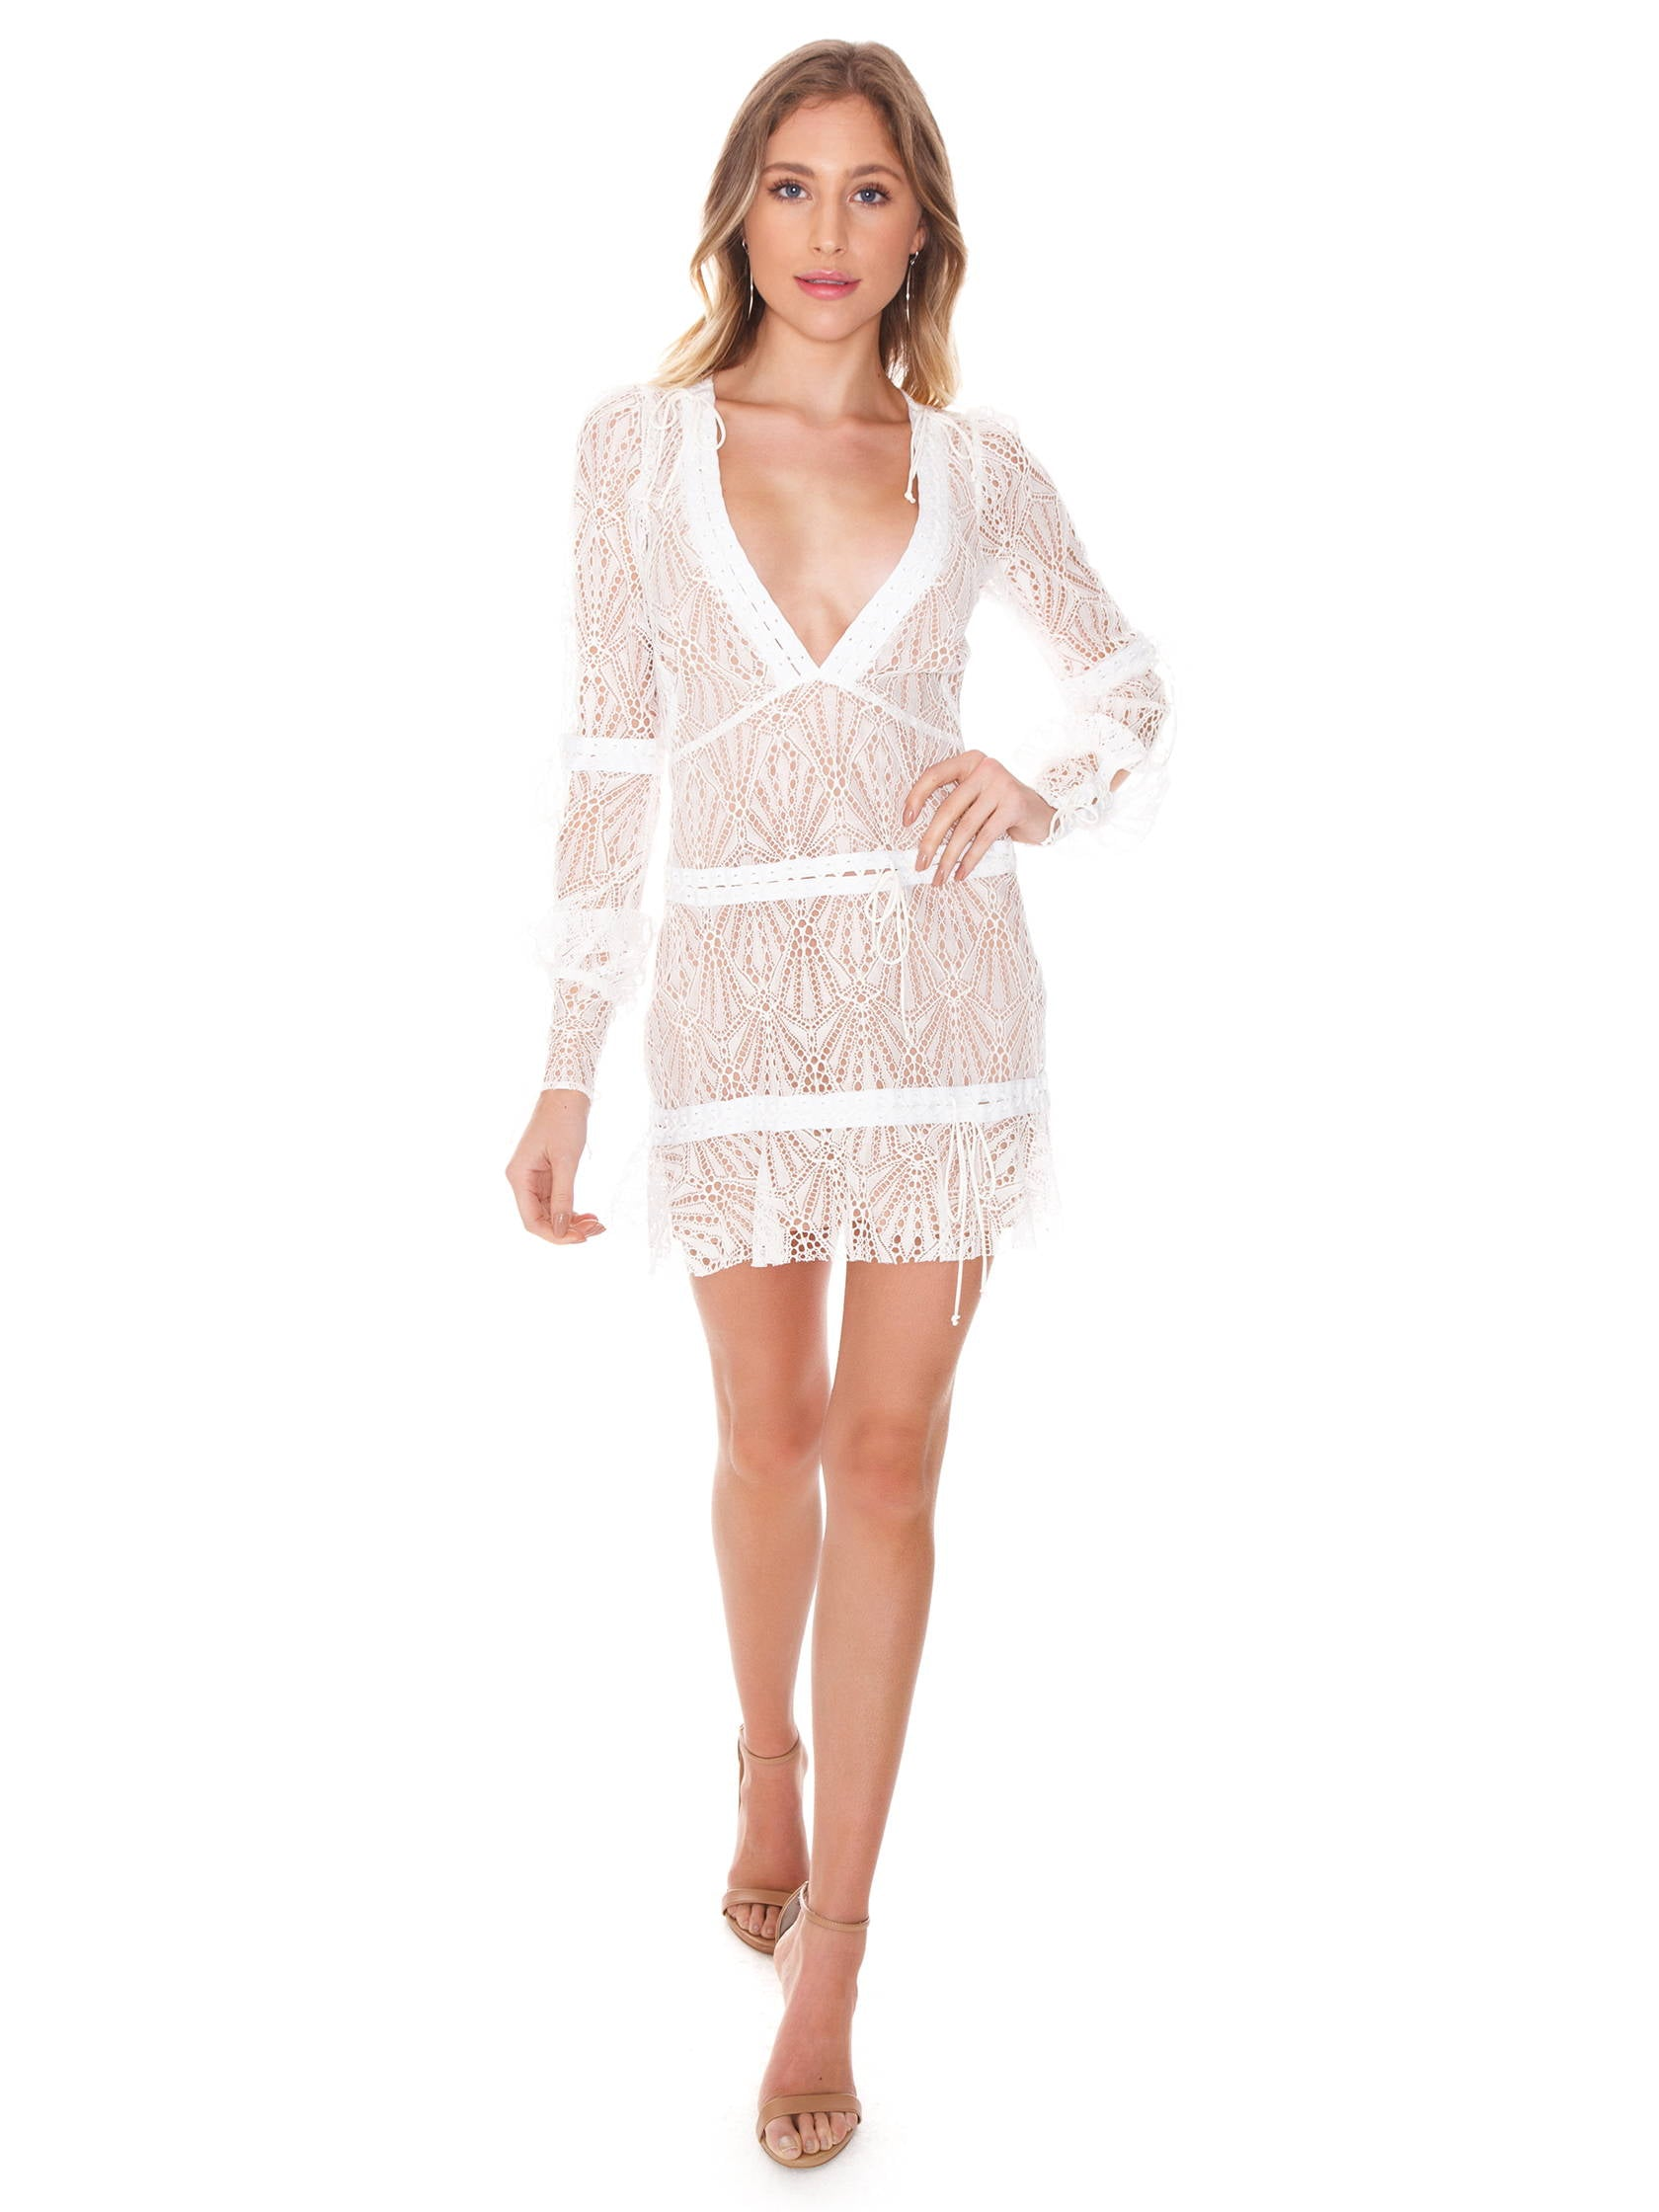 Girl outfit in a dress rental from For Love & Lemons called Bright Lights Mini Dress